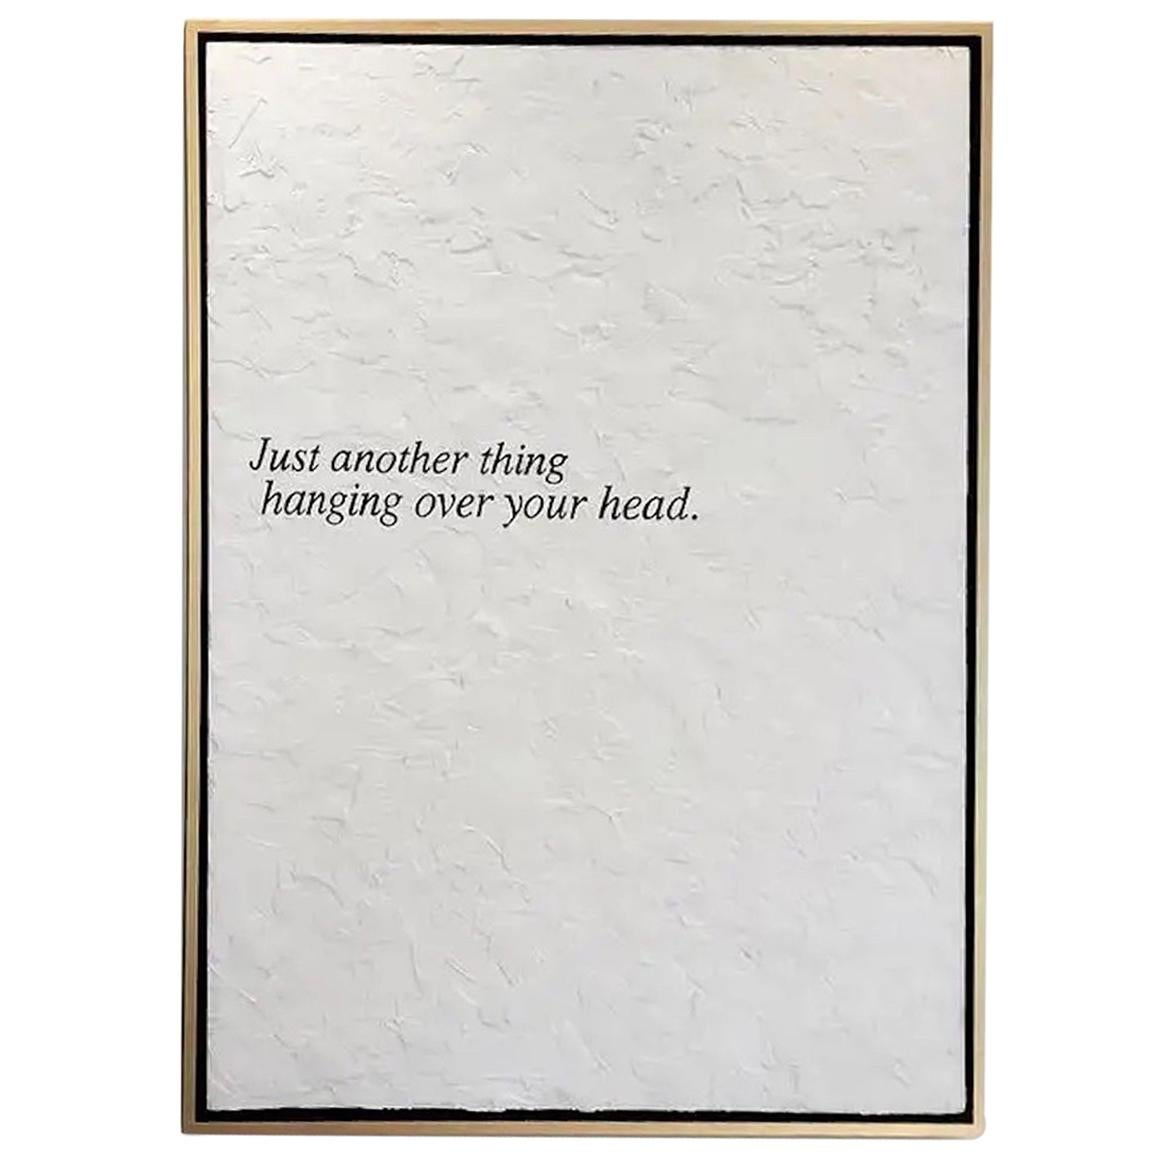 """Peter Buchman """"Just another thing hanging over your head."""", 2017"""